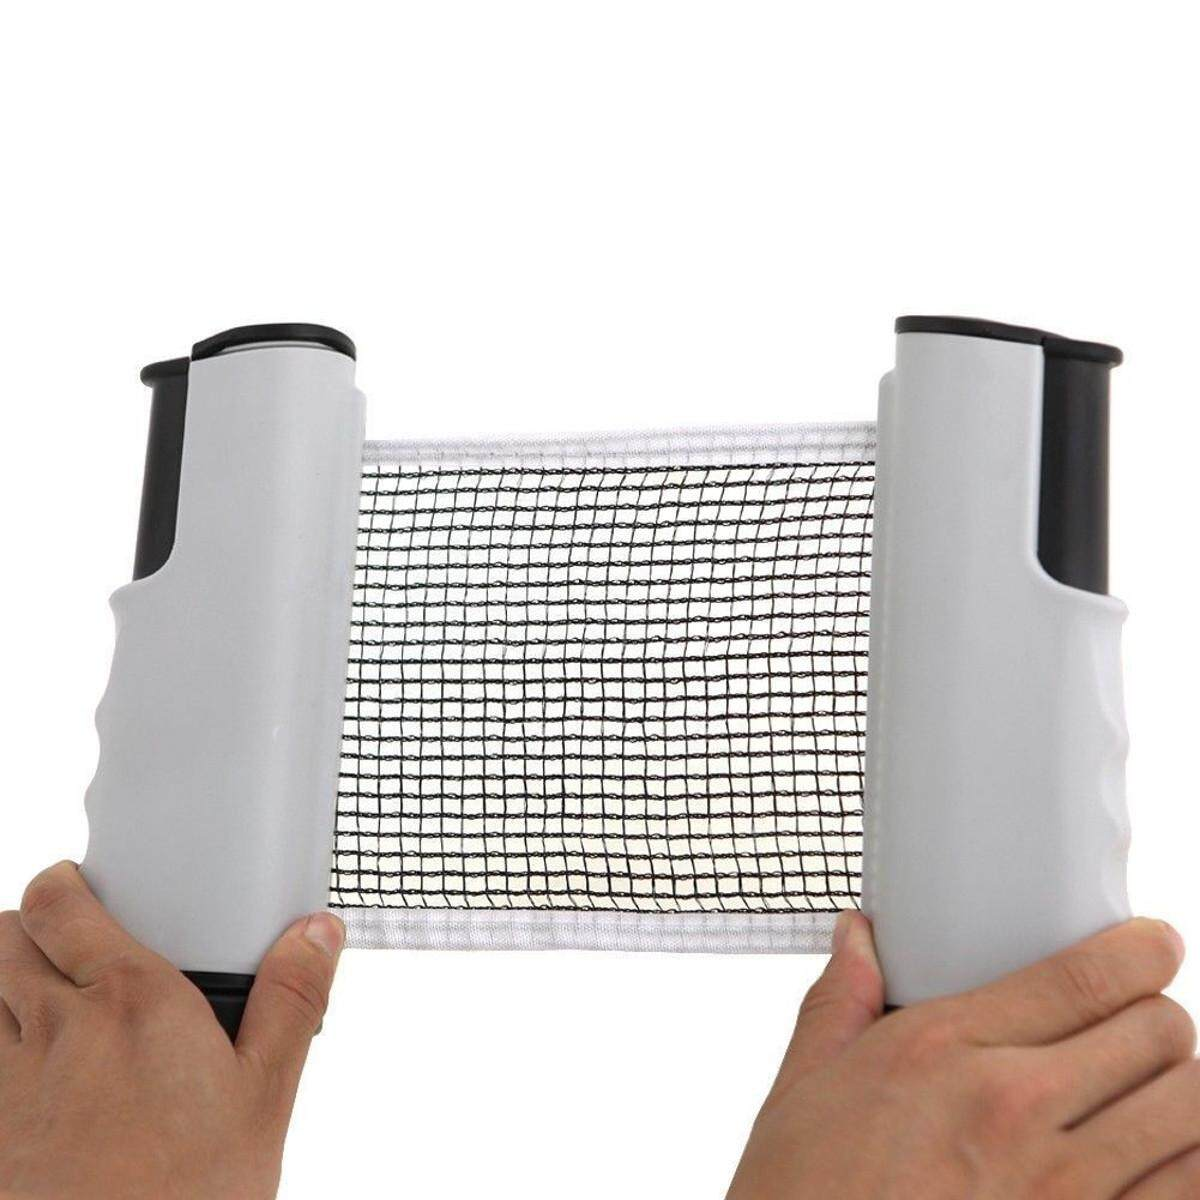 Games Retractable Table Tennis Ping Pong Portable Net Kit Replacement Set Indoor # White+Black